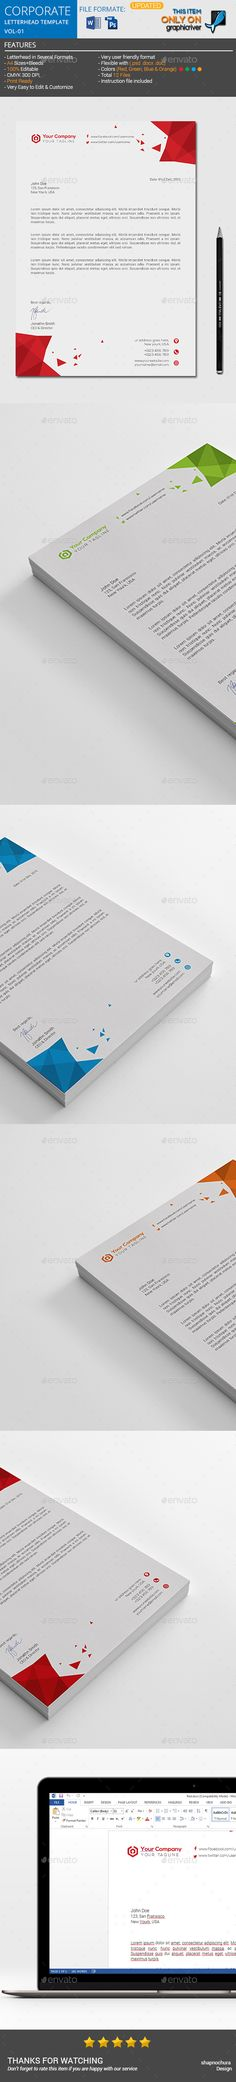 Corporate #Letterhead Template by ThemeDevisers on @creativemarket - corporate letterhead template